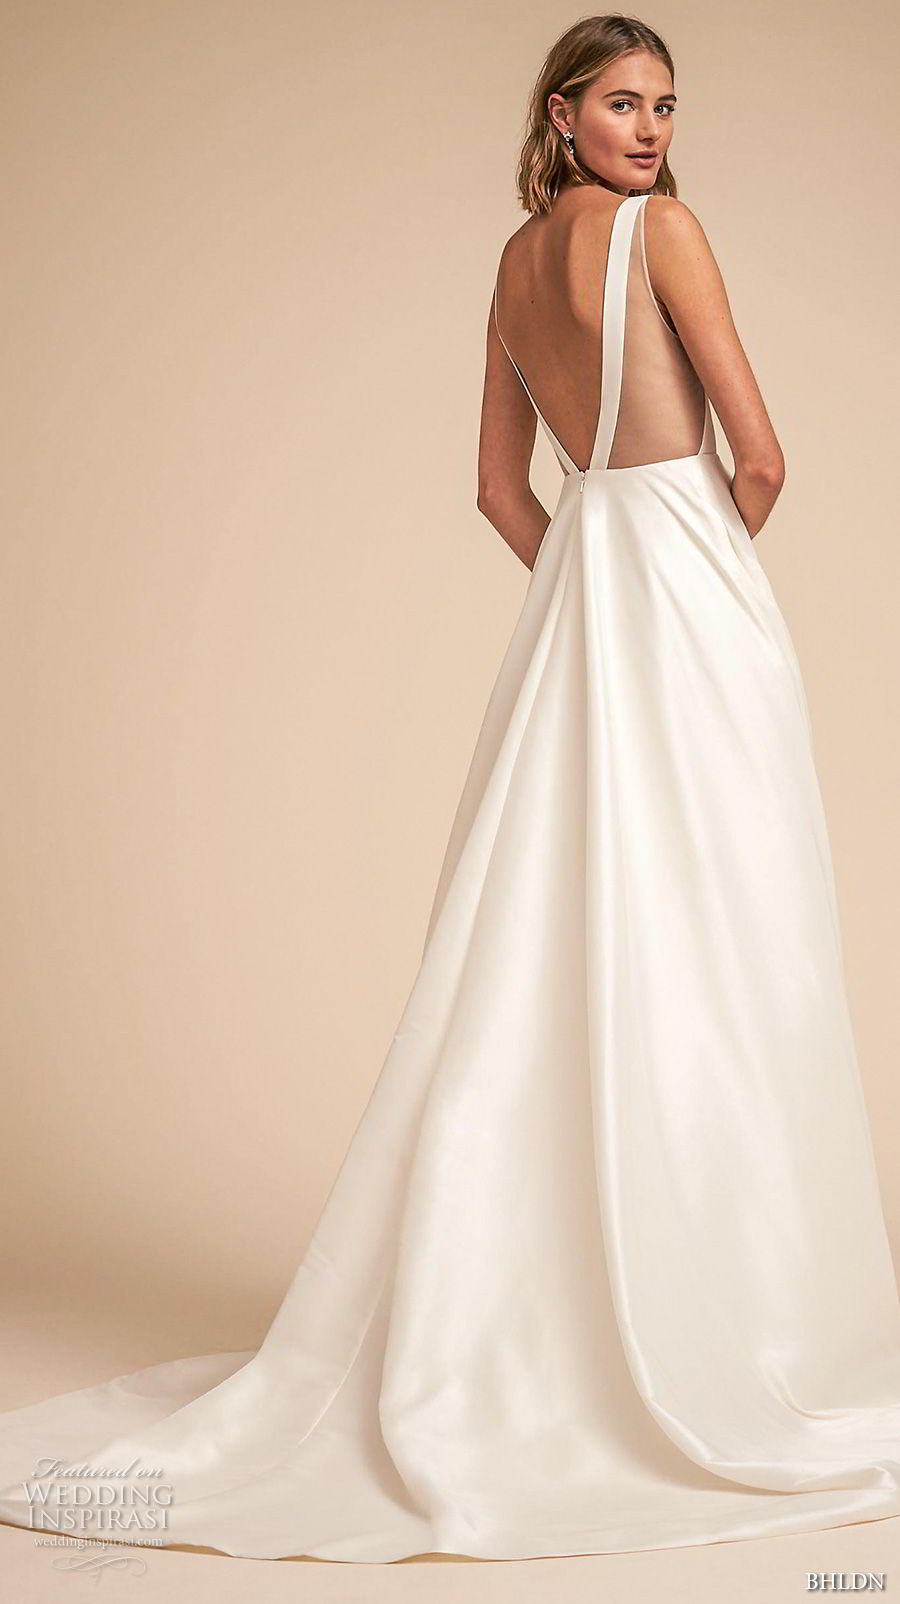 bhldn spring 2018 bridal sleeveless deep v neck simple clean a  line wedding dress open v back chapel train (16) bv